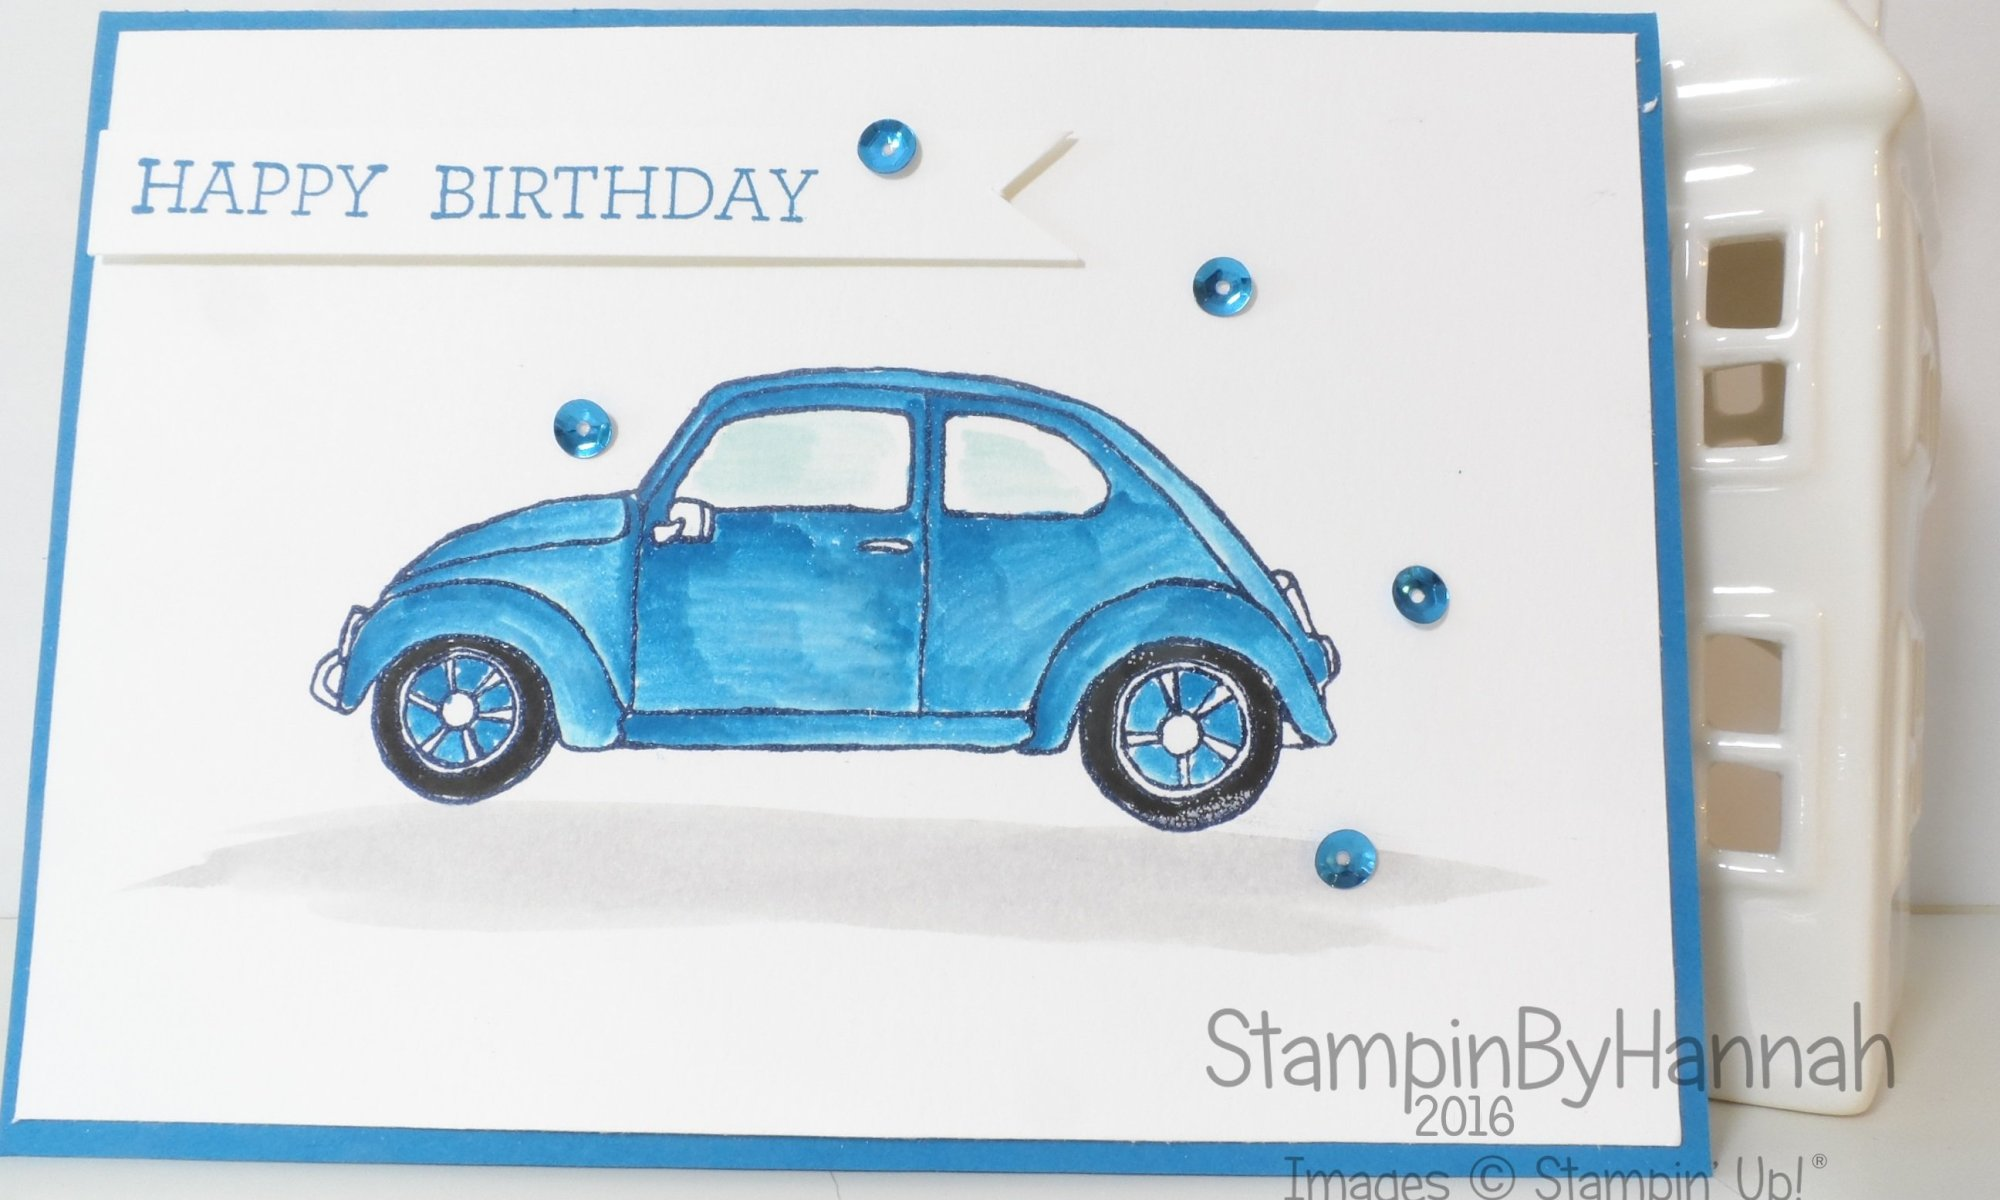 Stampin' Up! UK Beautiful Ride mans birthday card